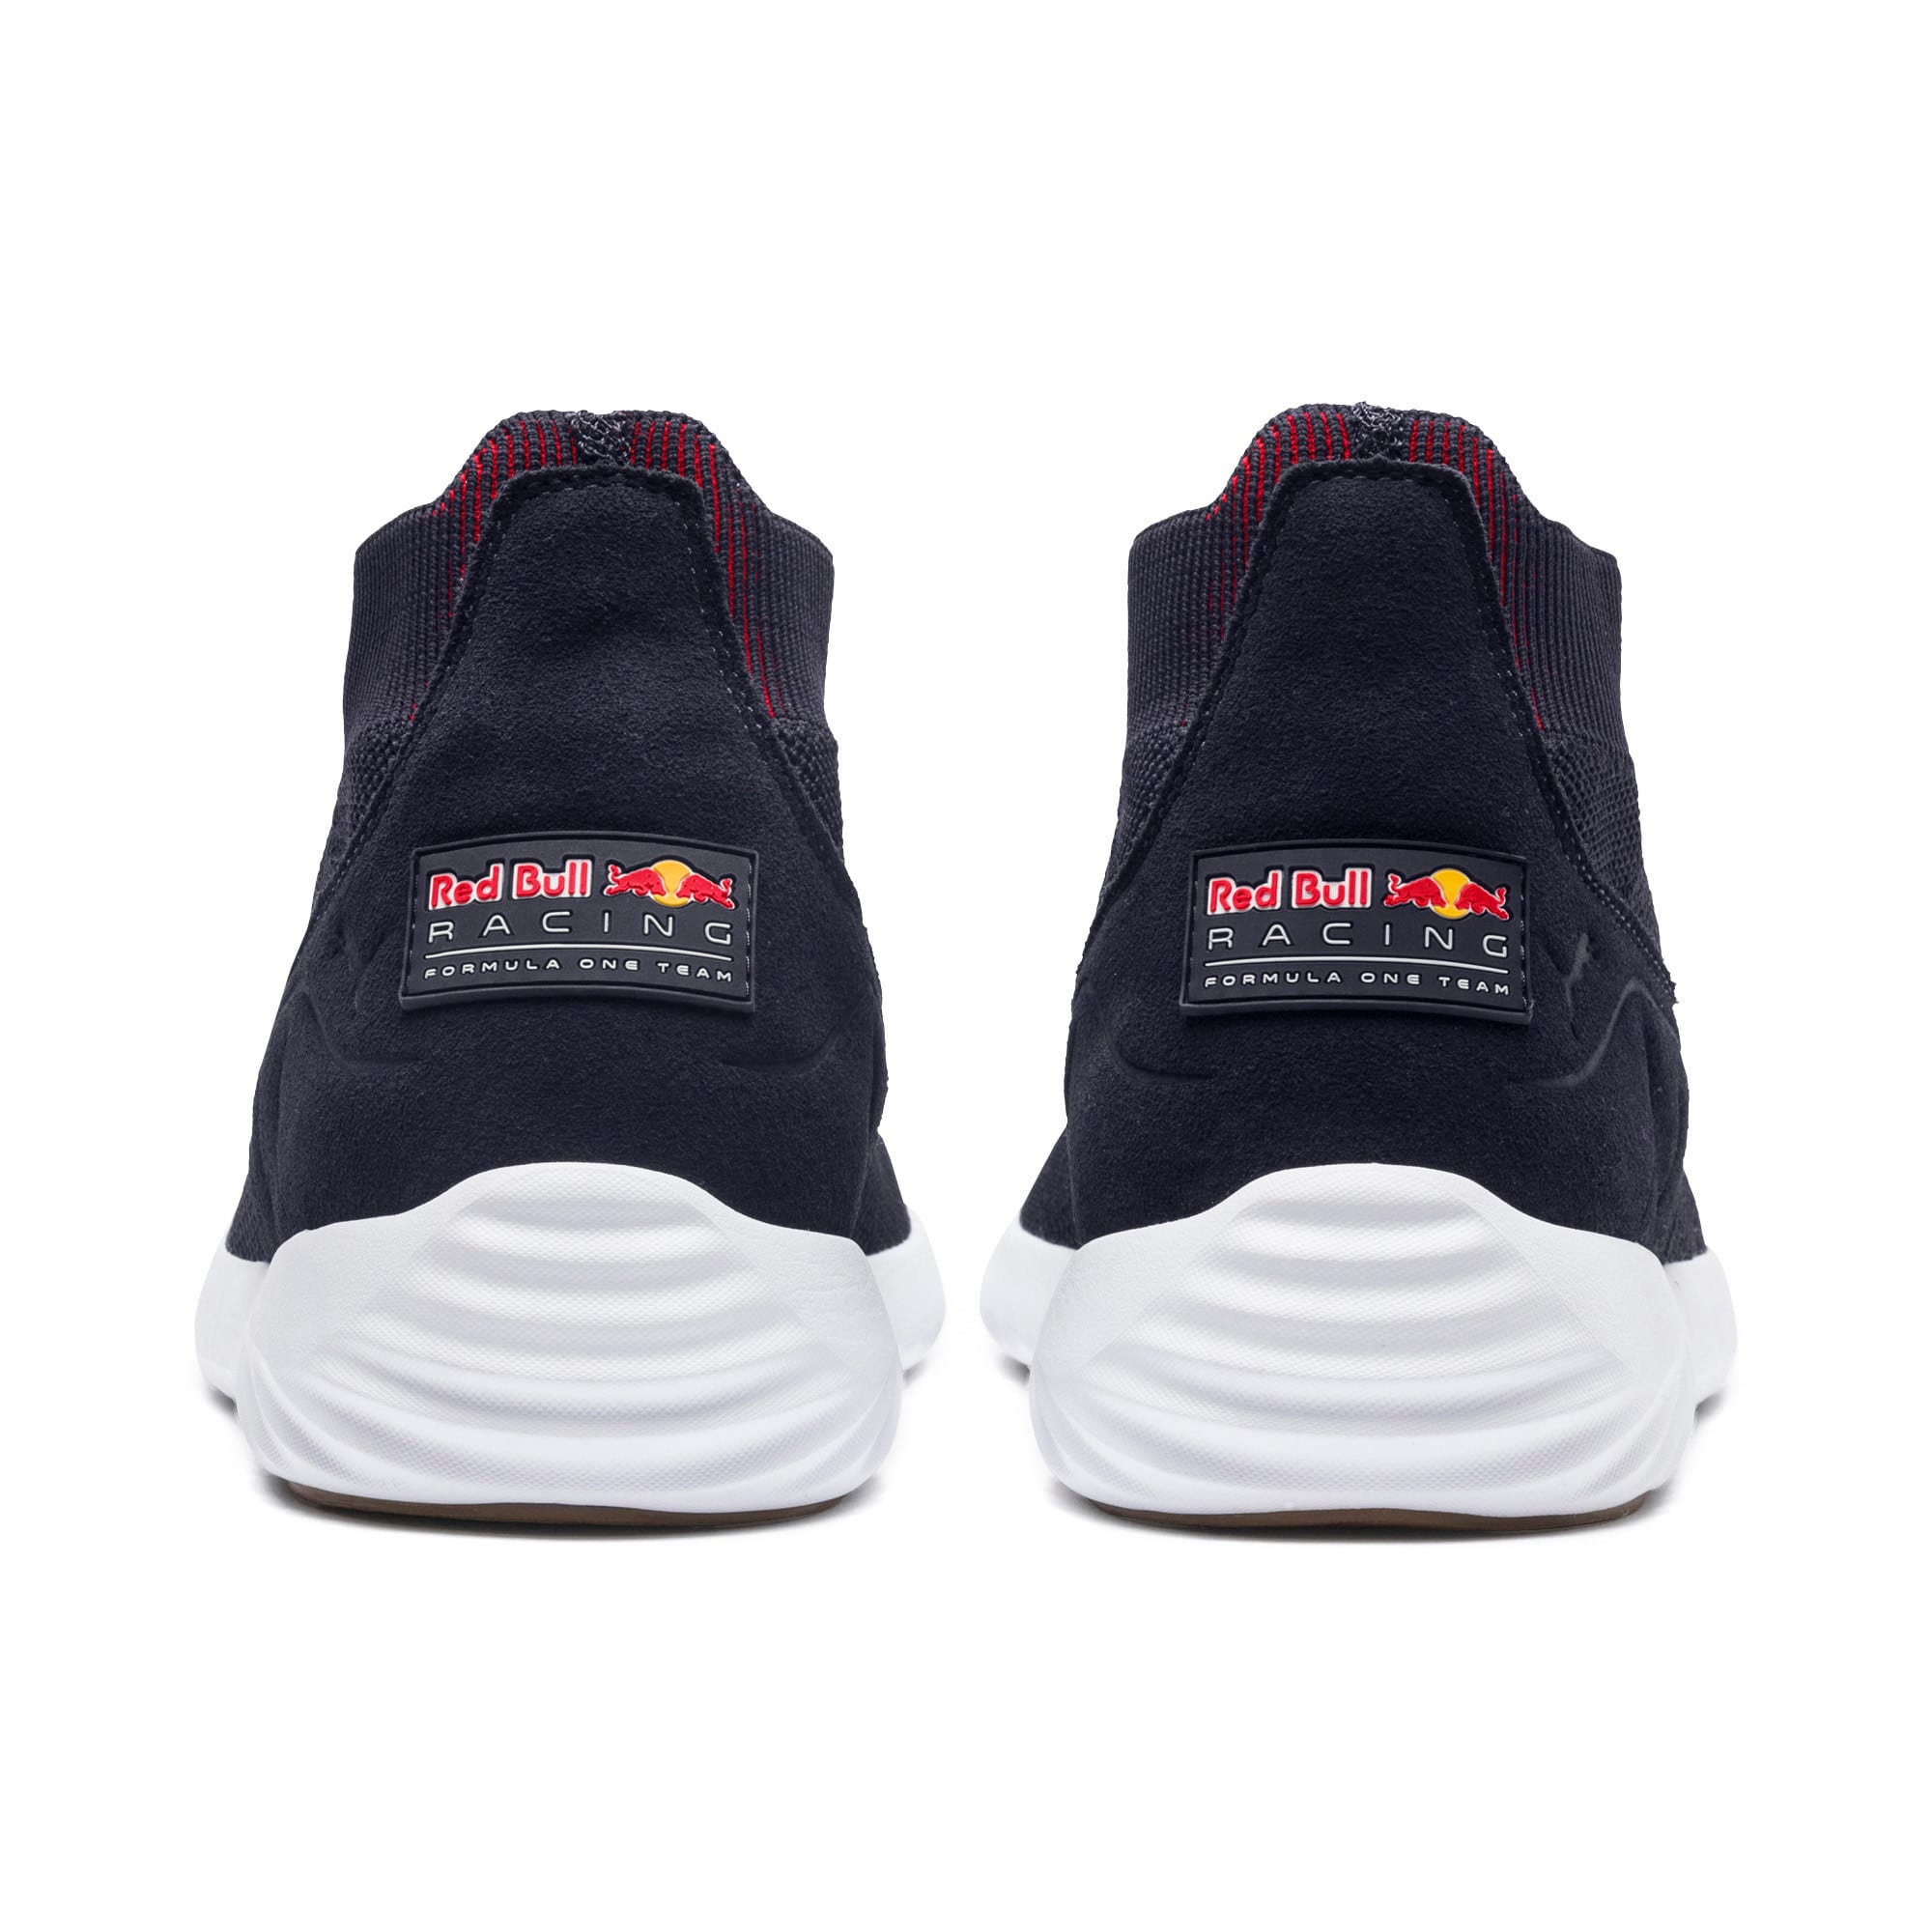 Thumbnail 2 of Red Bull Racing SpeedCat Wings Trainers, NIGHT SKY-Chinese Red-Wht, medium-IND